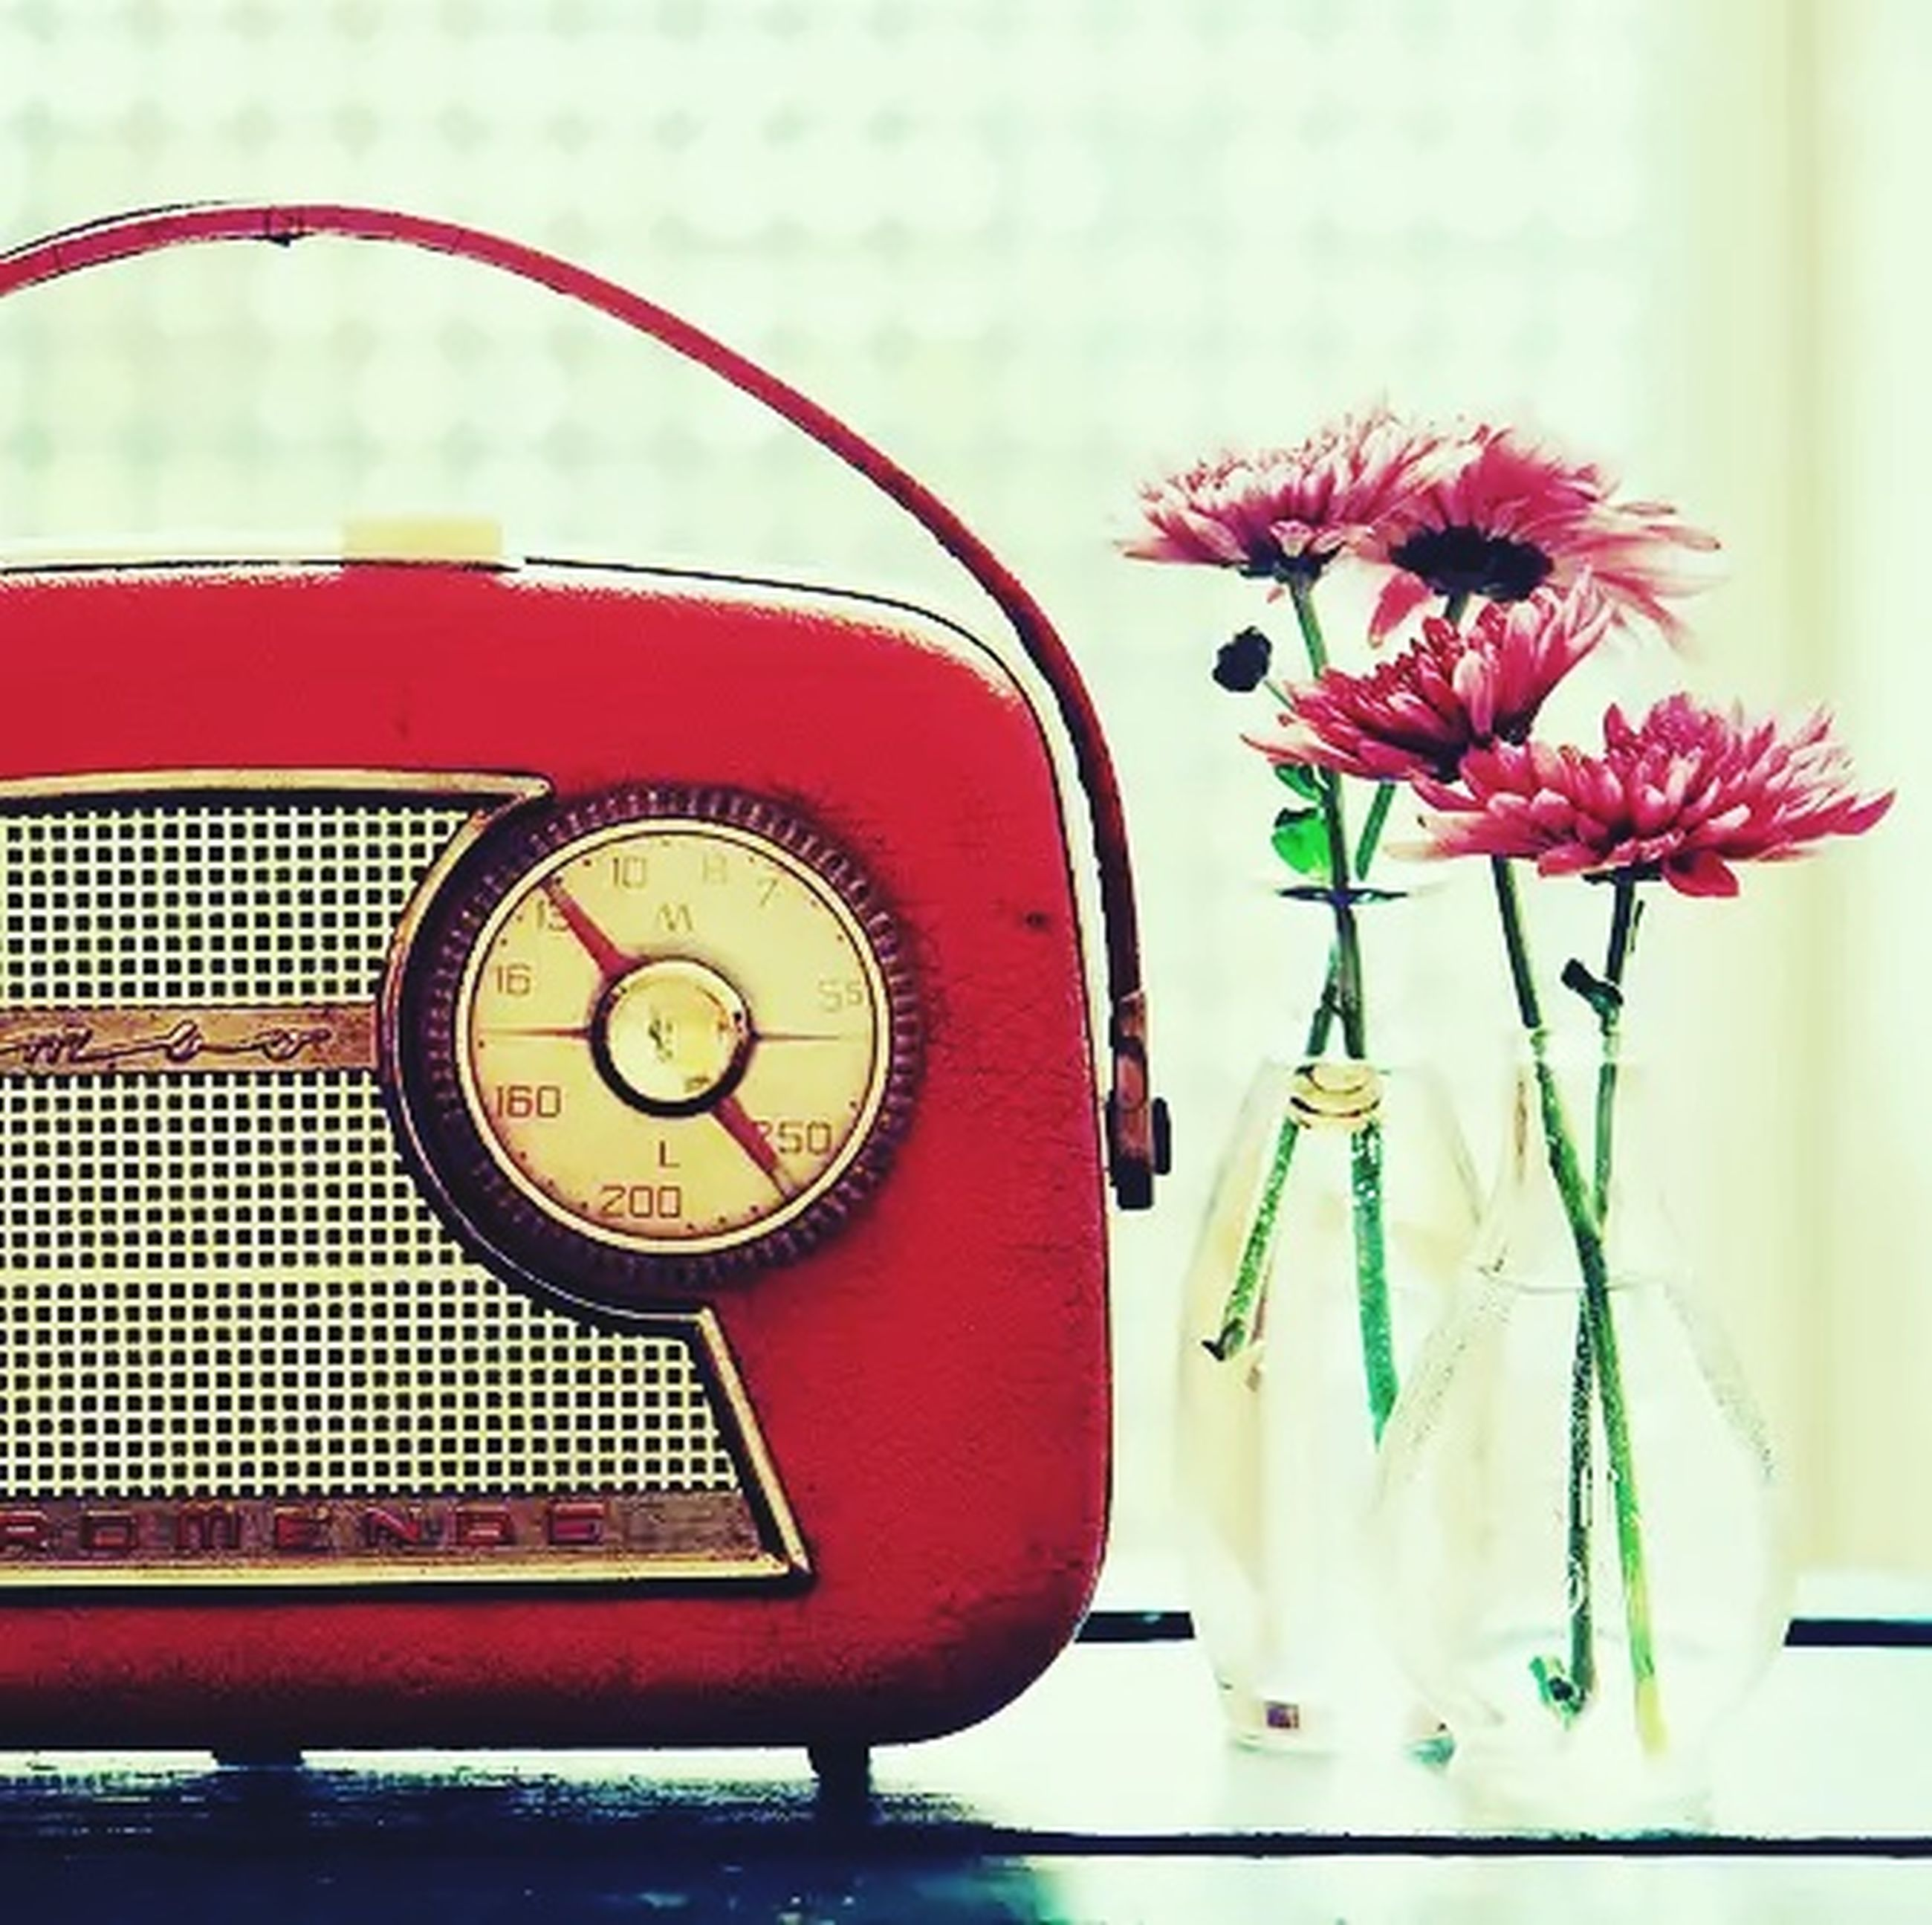 red, close-up, flower, time, focus on foreground, indoors, clock, communication, text, no people, old-fashioned, pink color, technology, number, day, decoration, clock face, western script, retro styled, accuracy